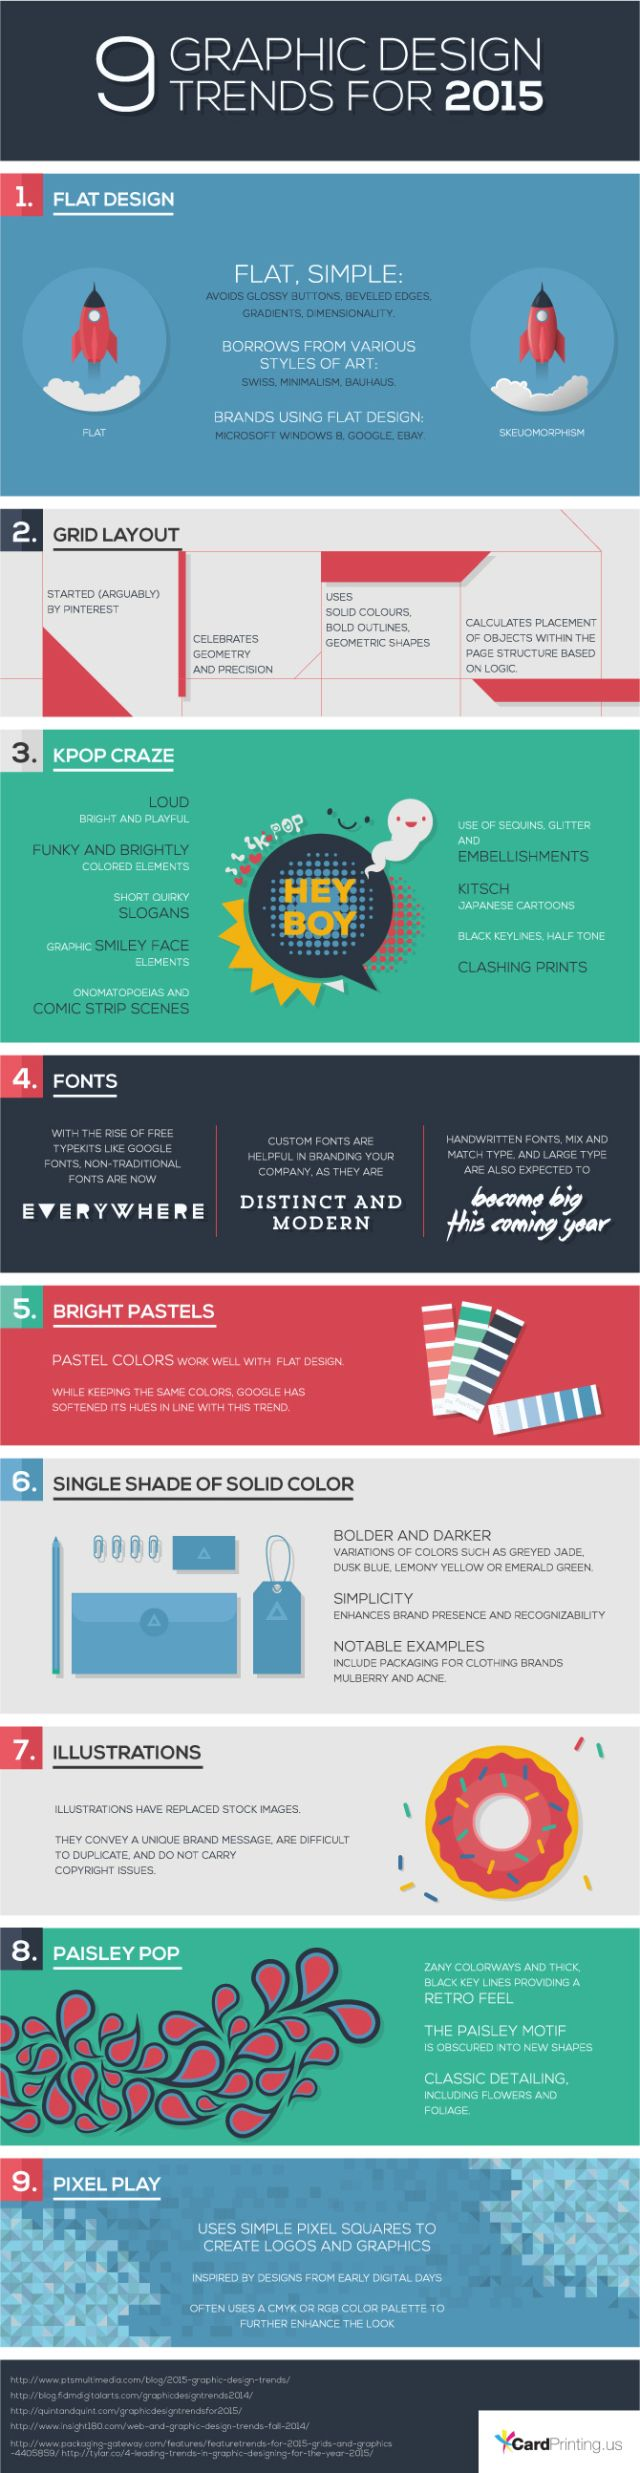 Create a Marketing Strategy That STANDS OUT With These 9 Design Trends #Infographic